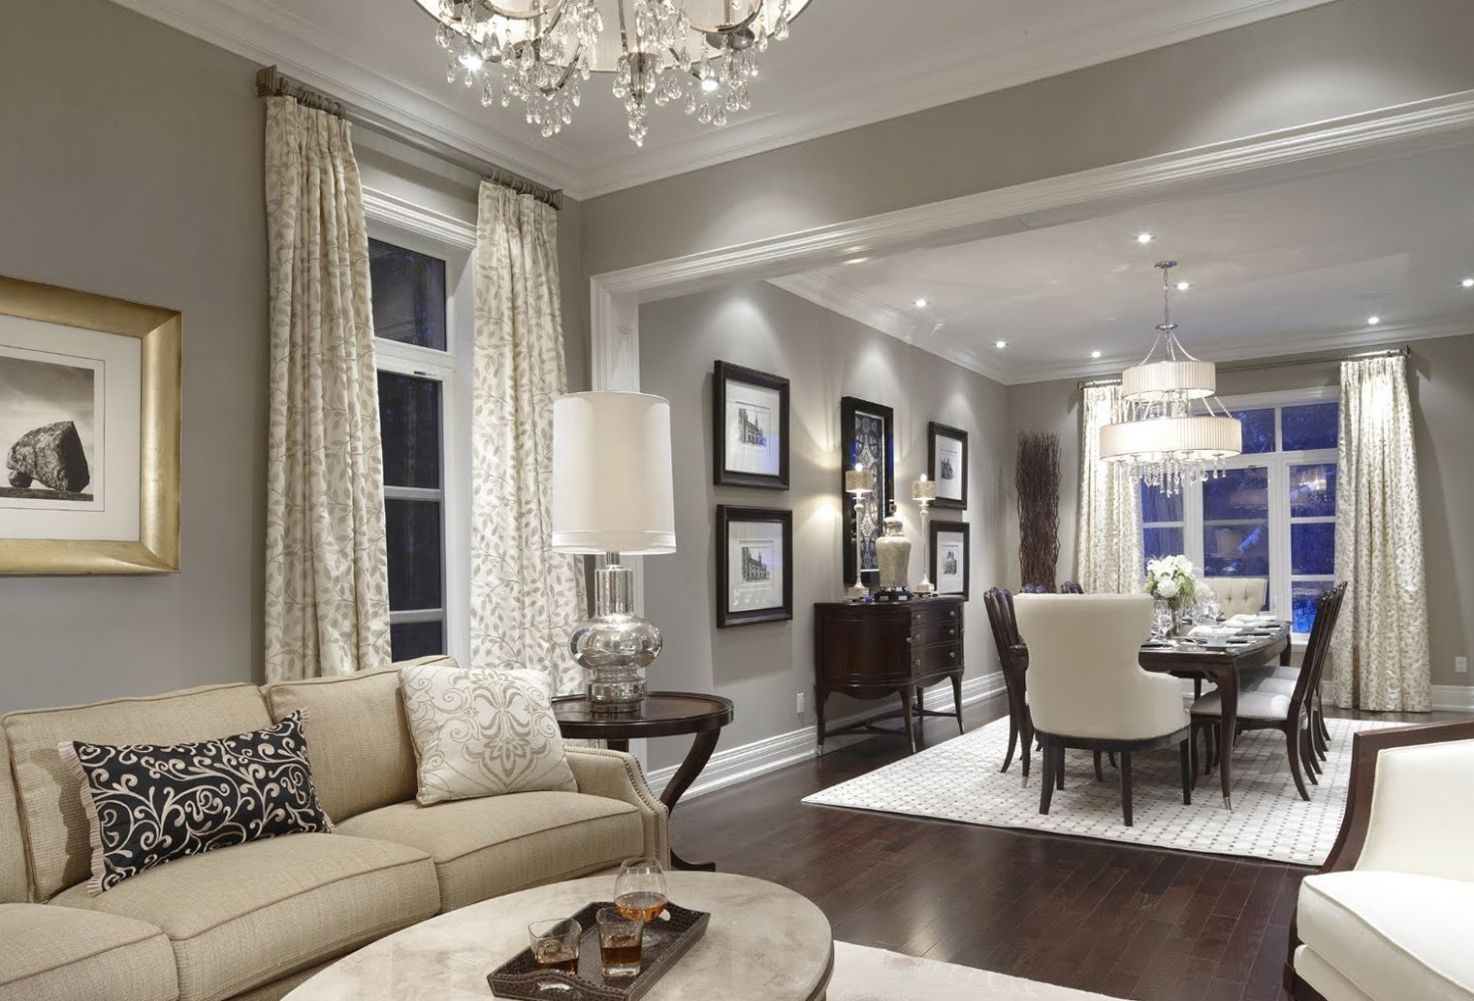 Redoubtable Curtain Ideas For Gray Walls Your Residence Concept Image Result For Curtains T Greige Living Room Curtains For Grey Walls Grey Walls Living Room #unique #living #room #decorations